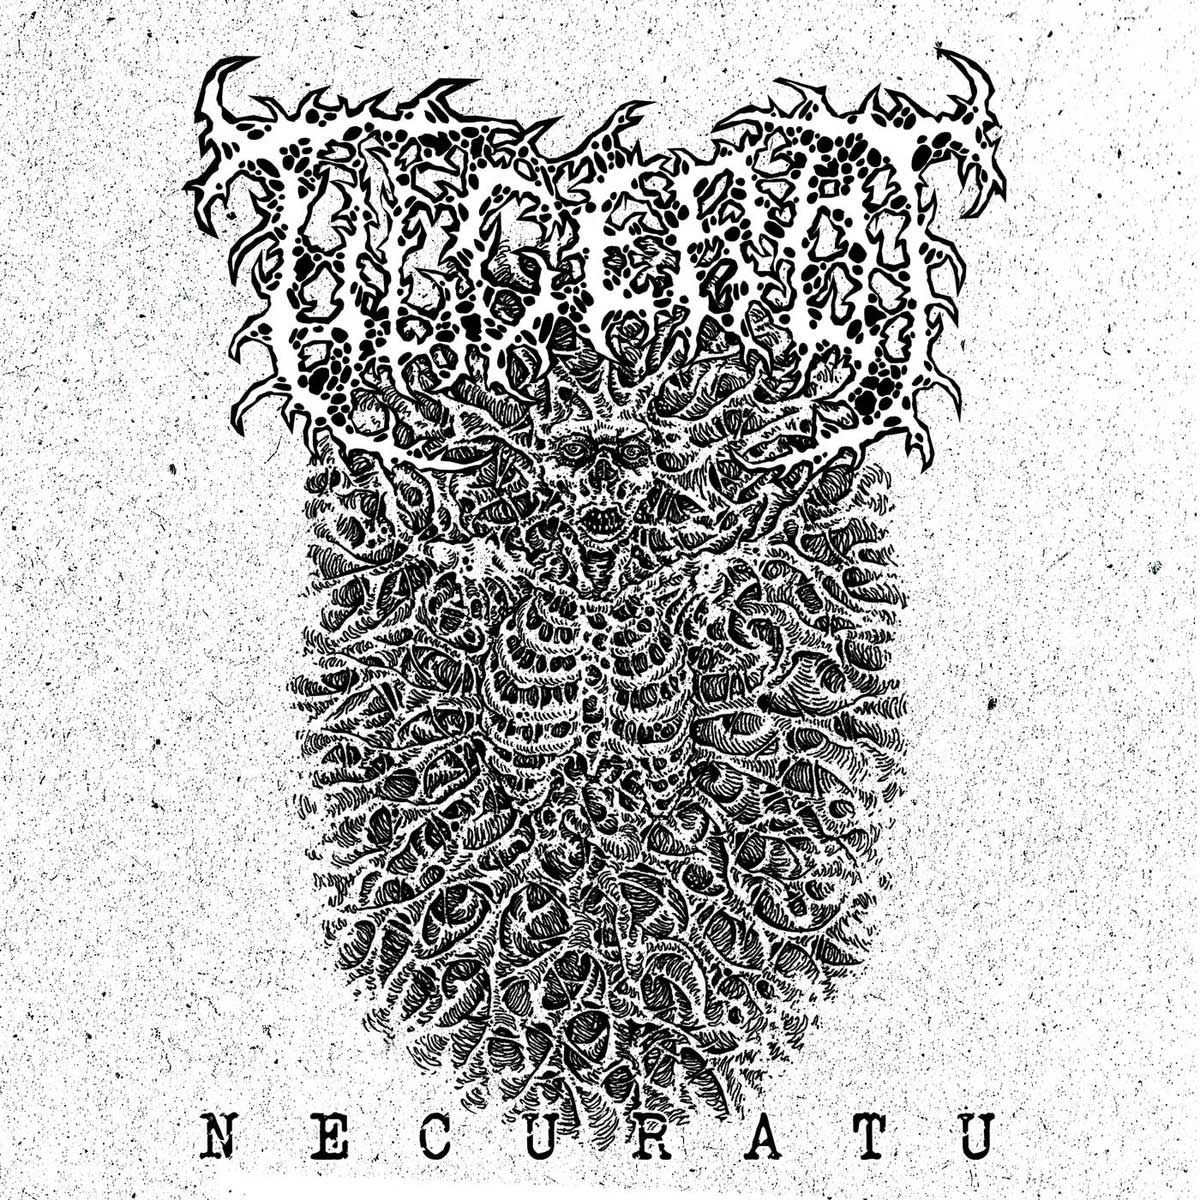 Ulcerot sleeve illustration